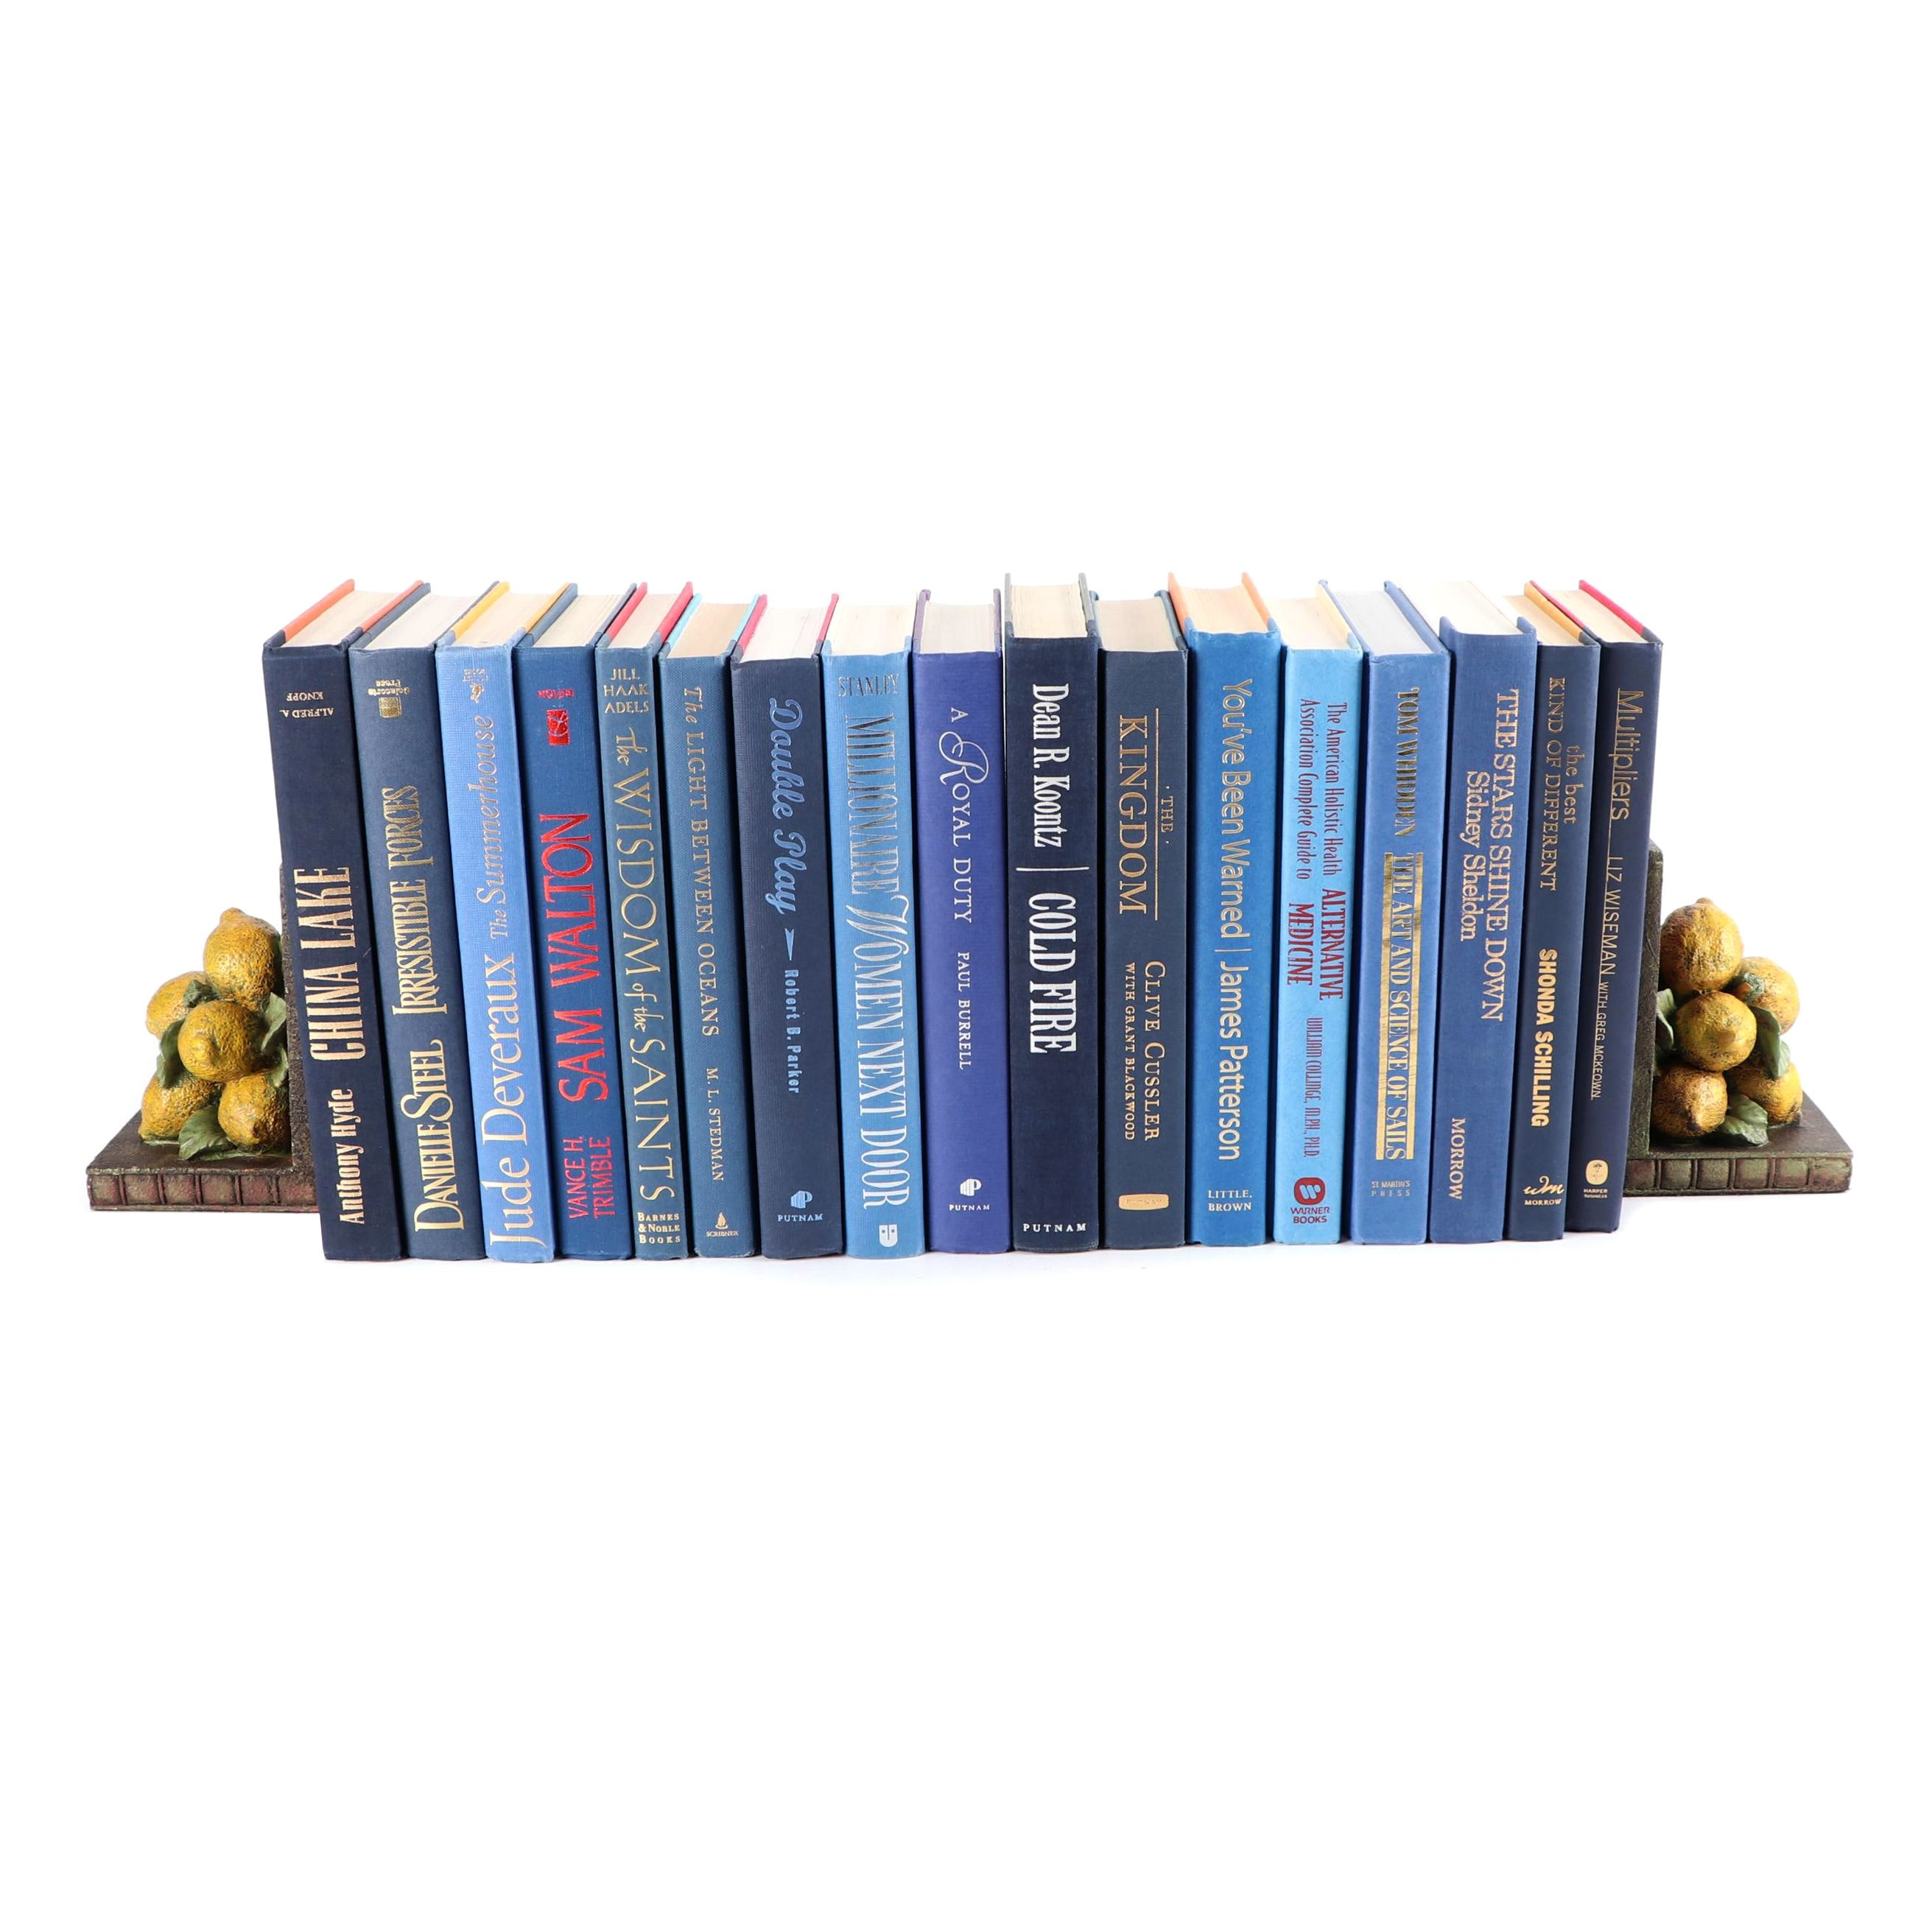 Sterling Industries Cast Resin Lemon Bookends with Blue Display Book Assortment